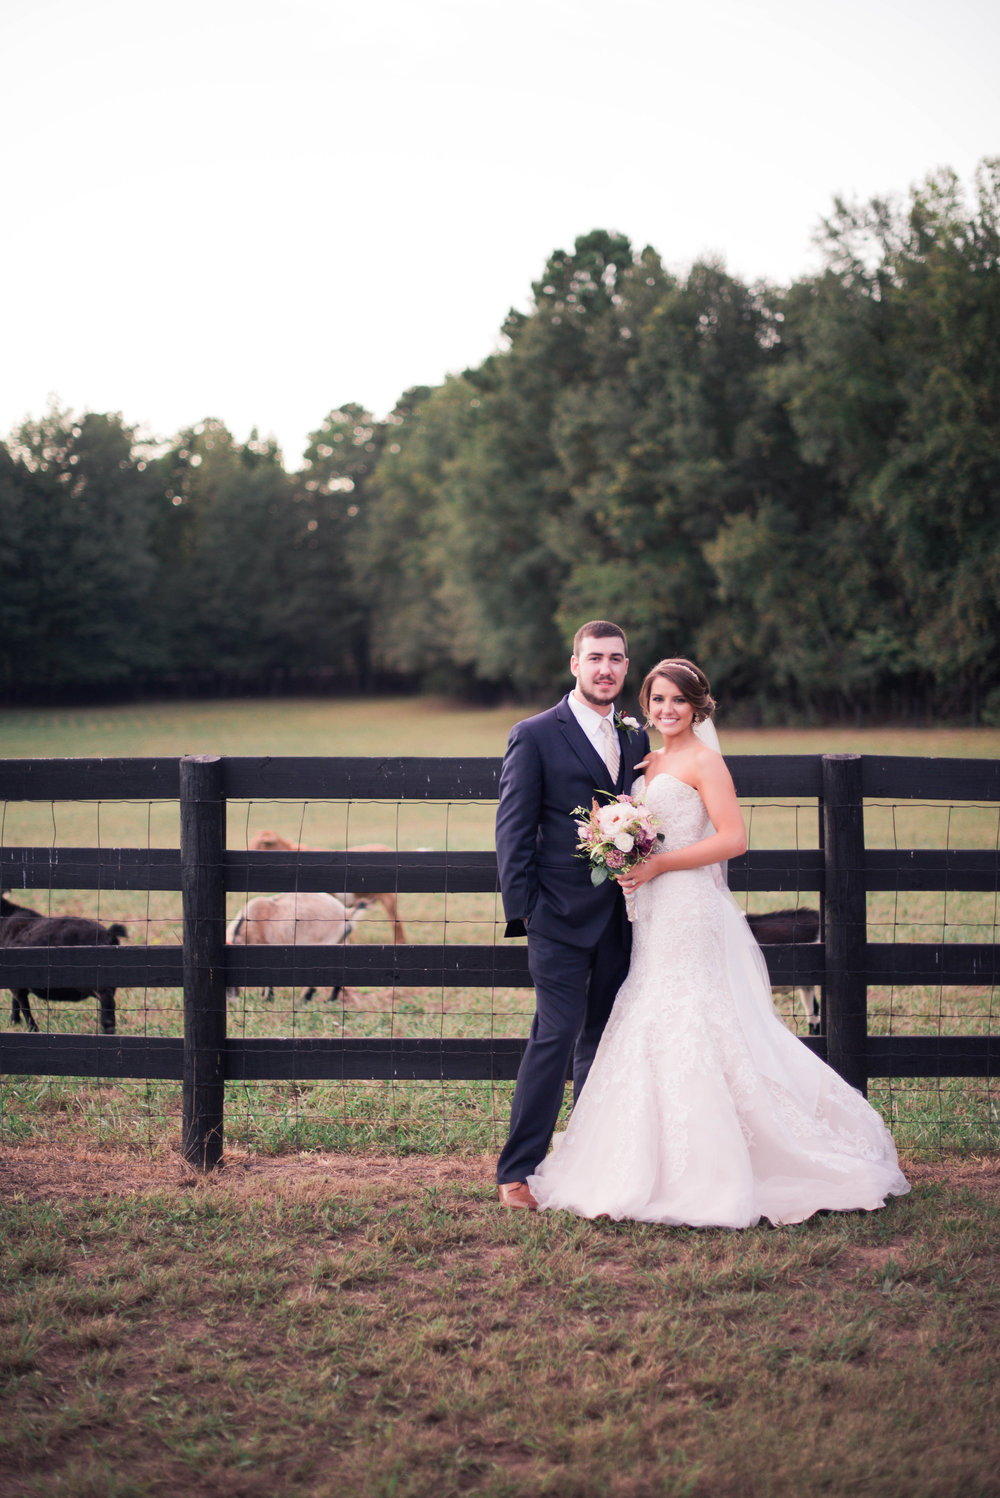 Hailey+NickWedding-83.jpg